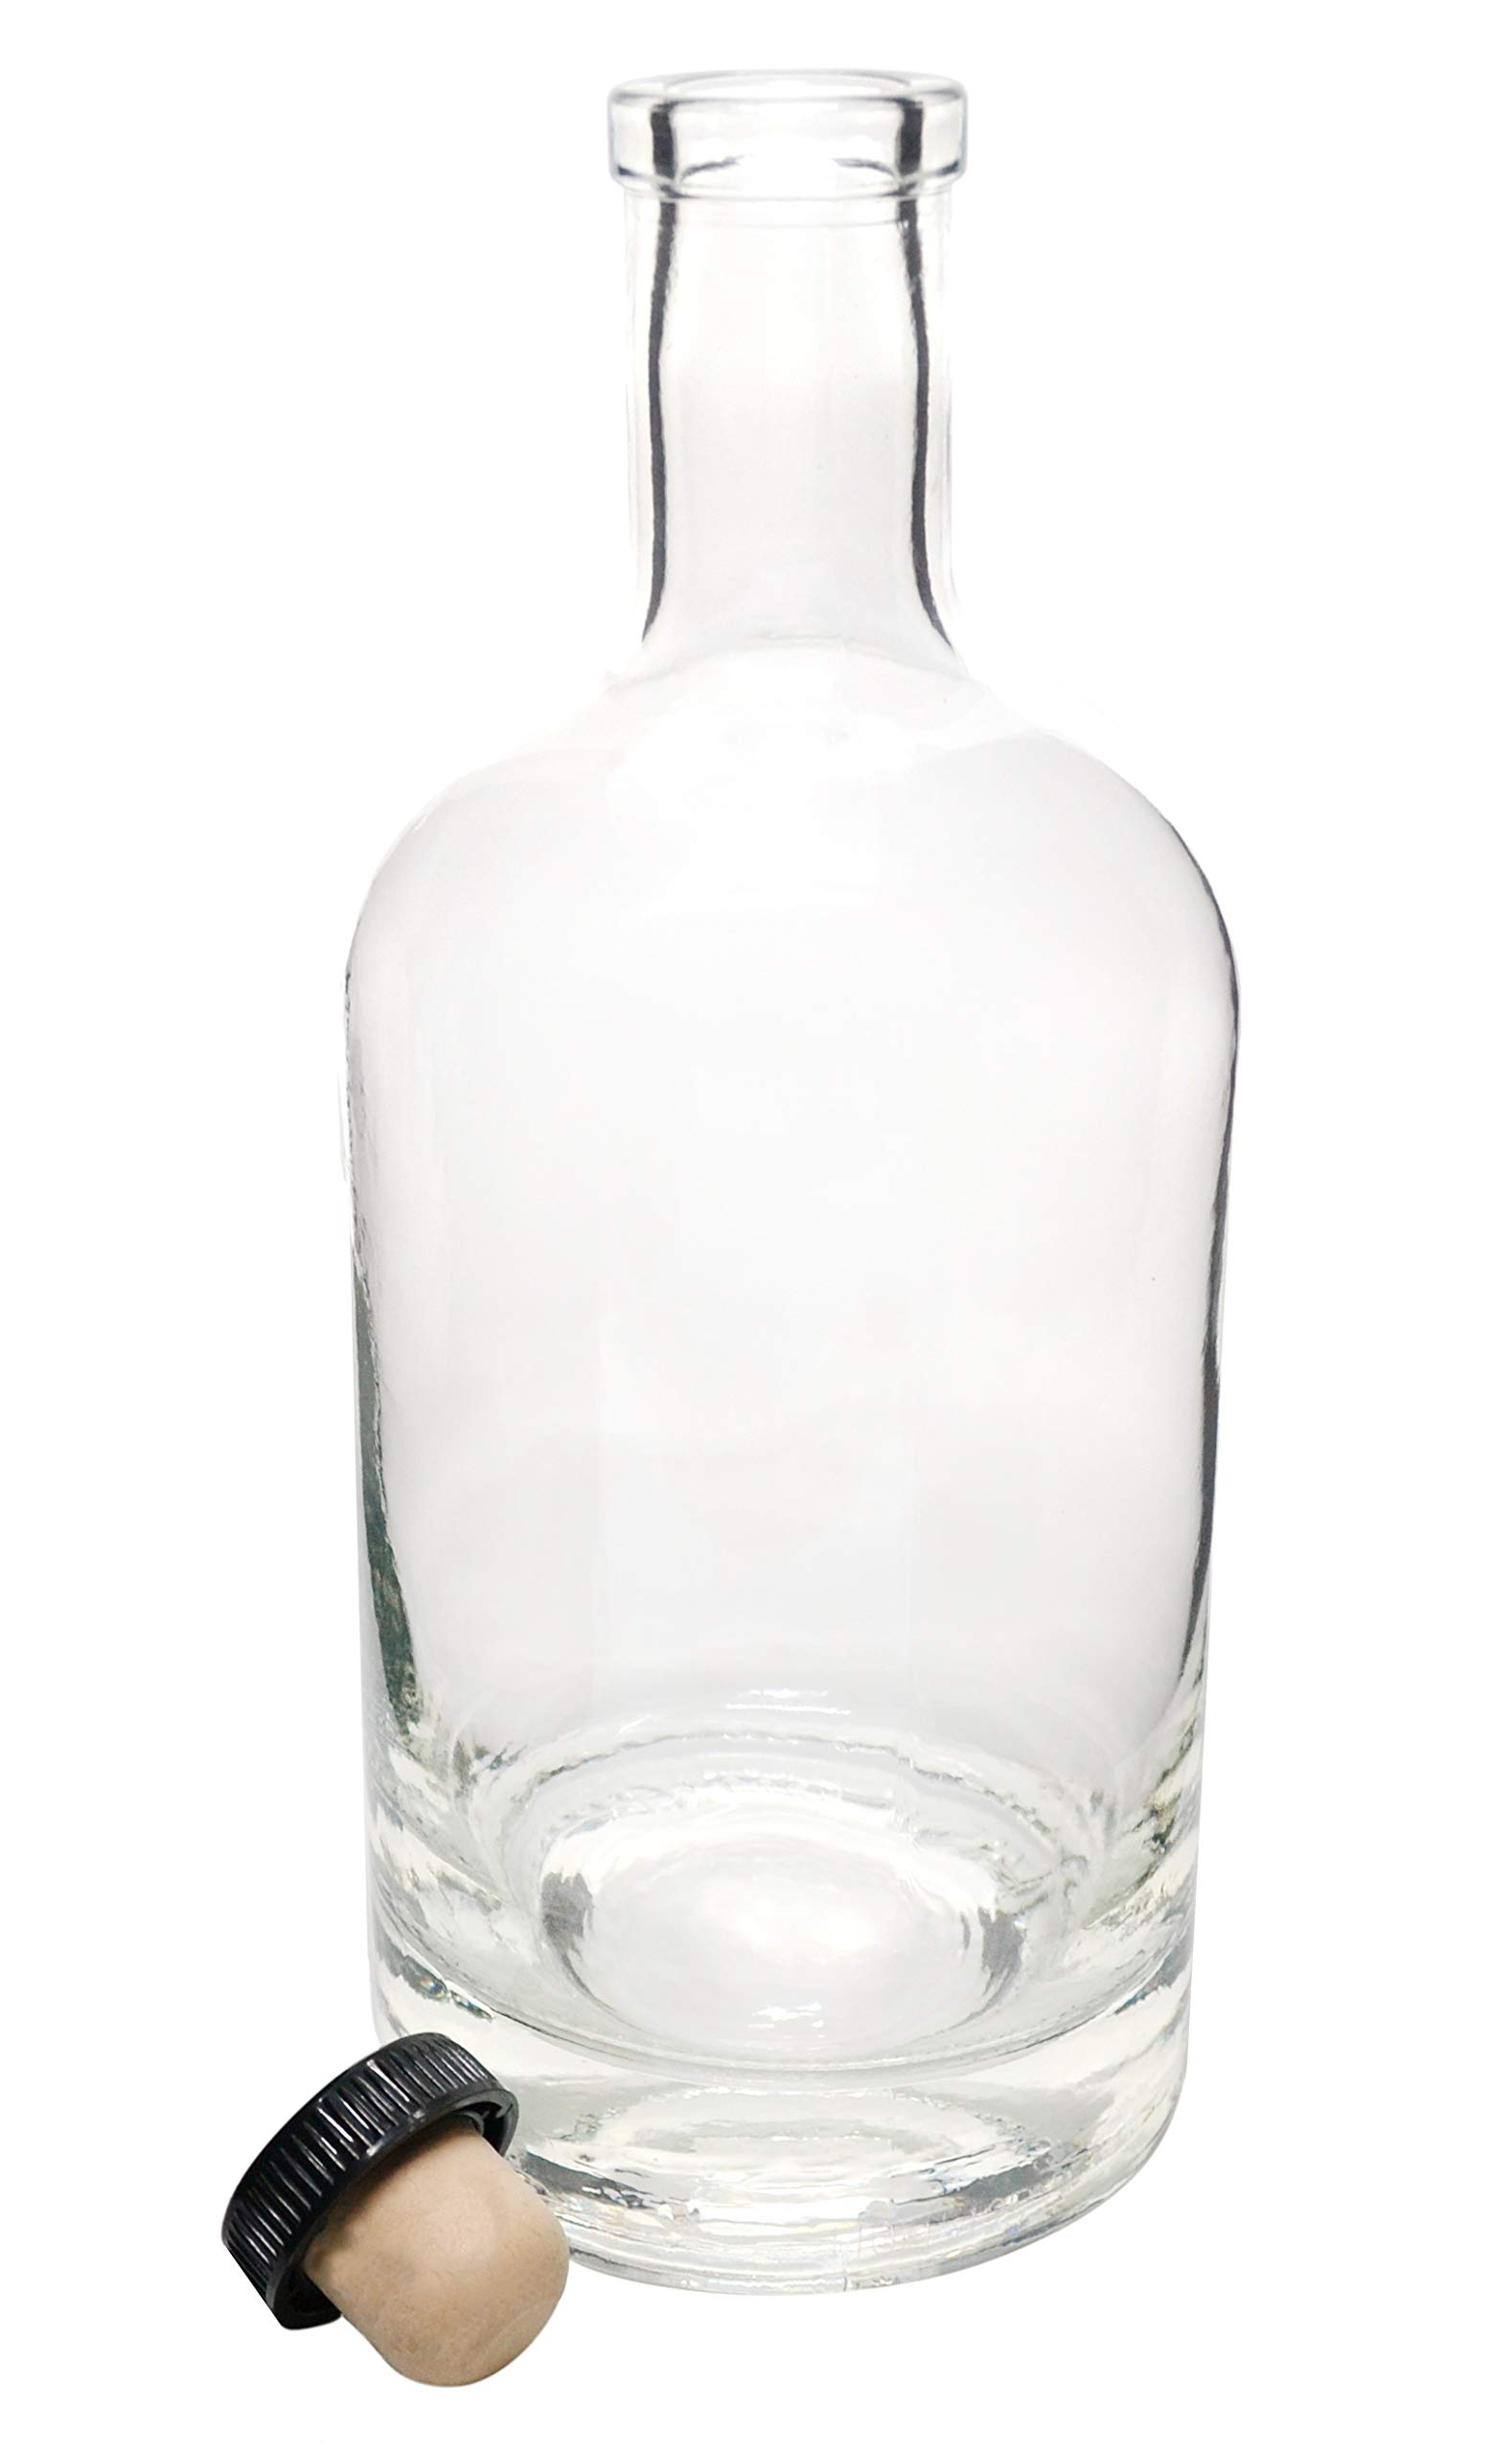 750ml Nordic Bottle with Synthetic Cork - Made in The USA - 100% Recyclable Glass - Food and Beverage Safe